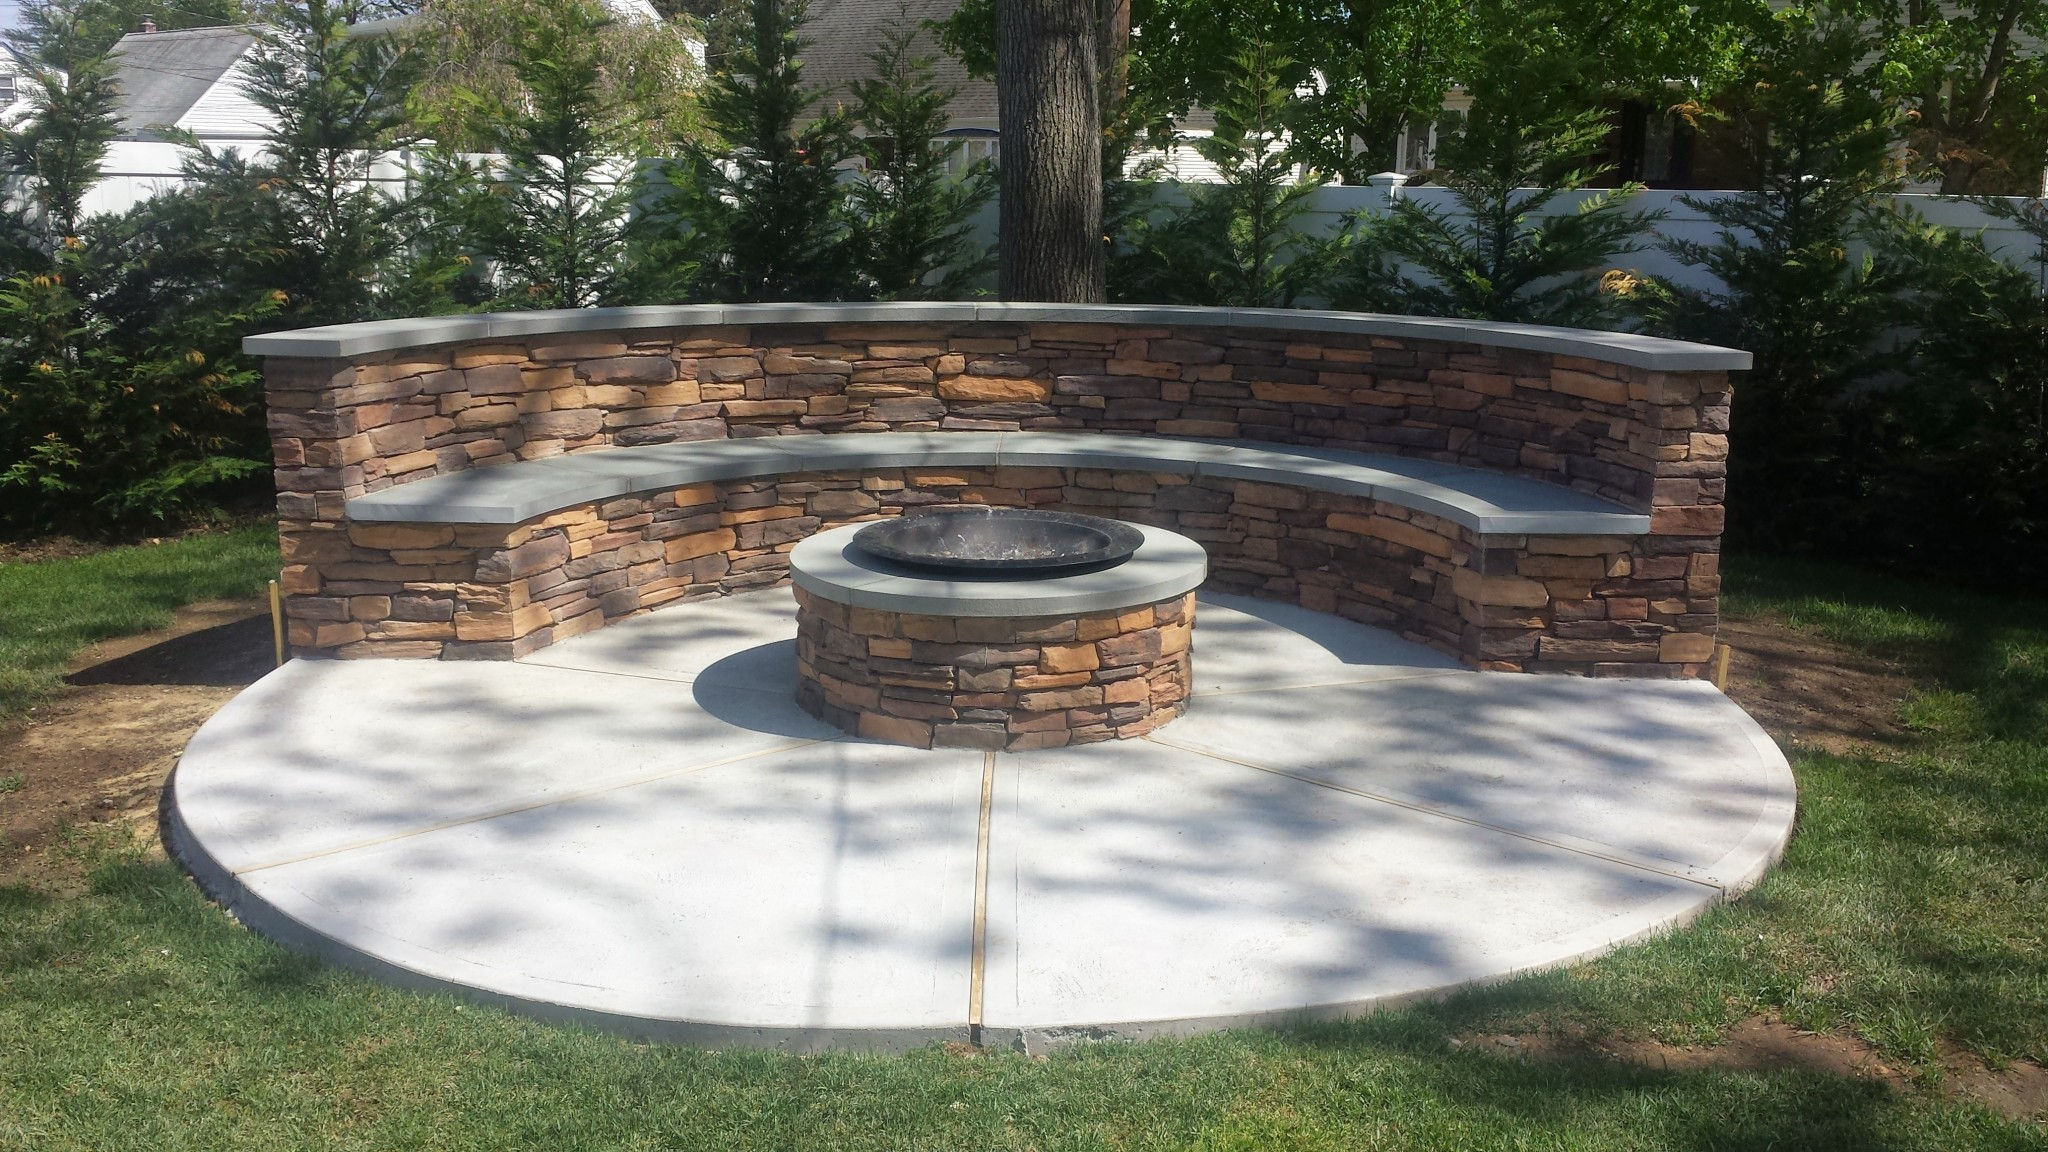 BENCH FIREPIT PLETE WITH CUSTOM BLUE STONE Ceraso Masonry